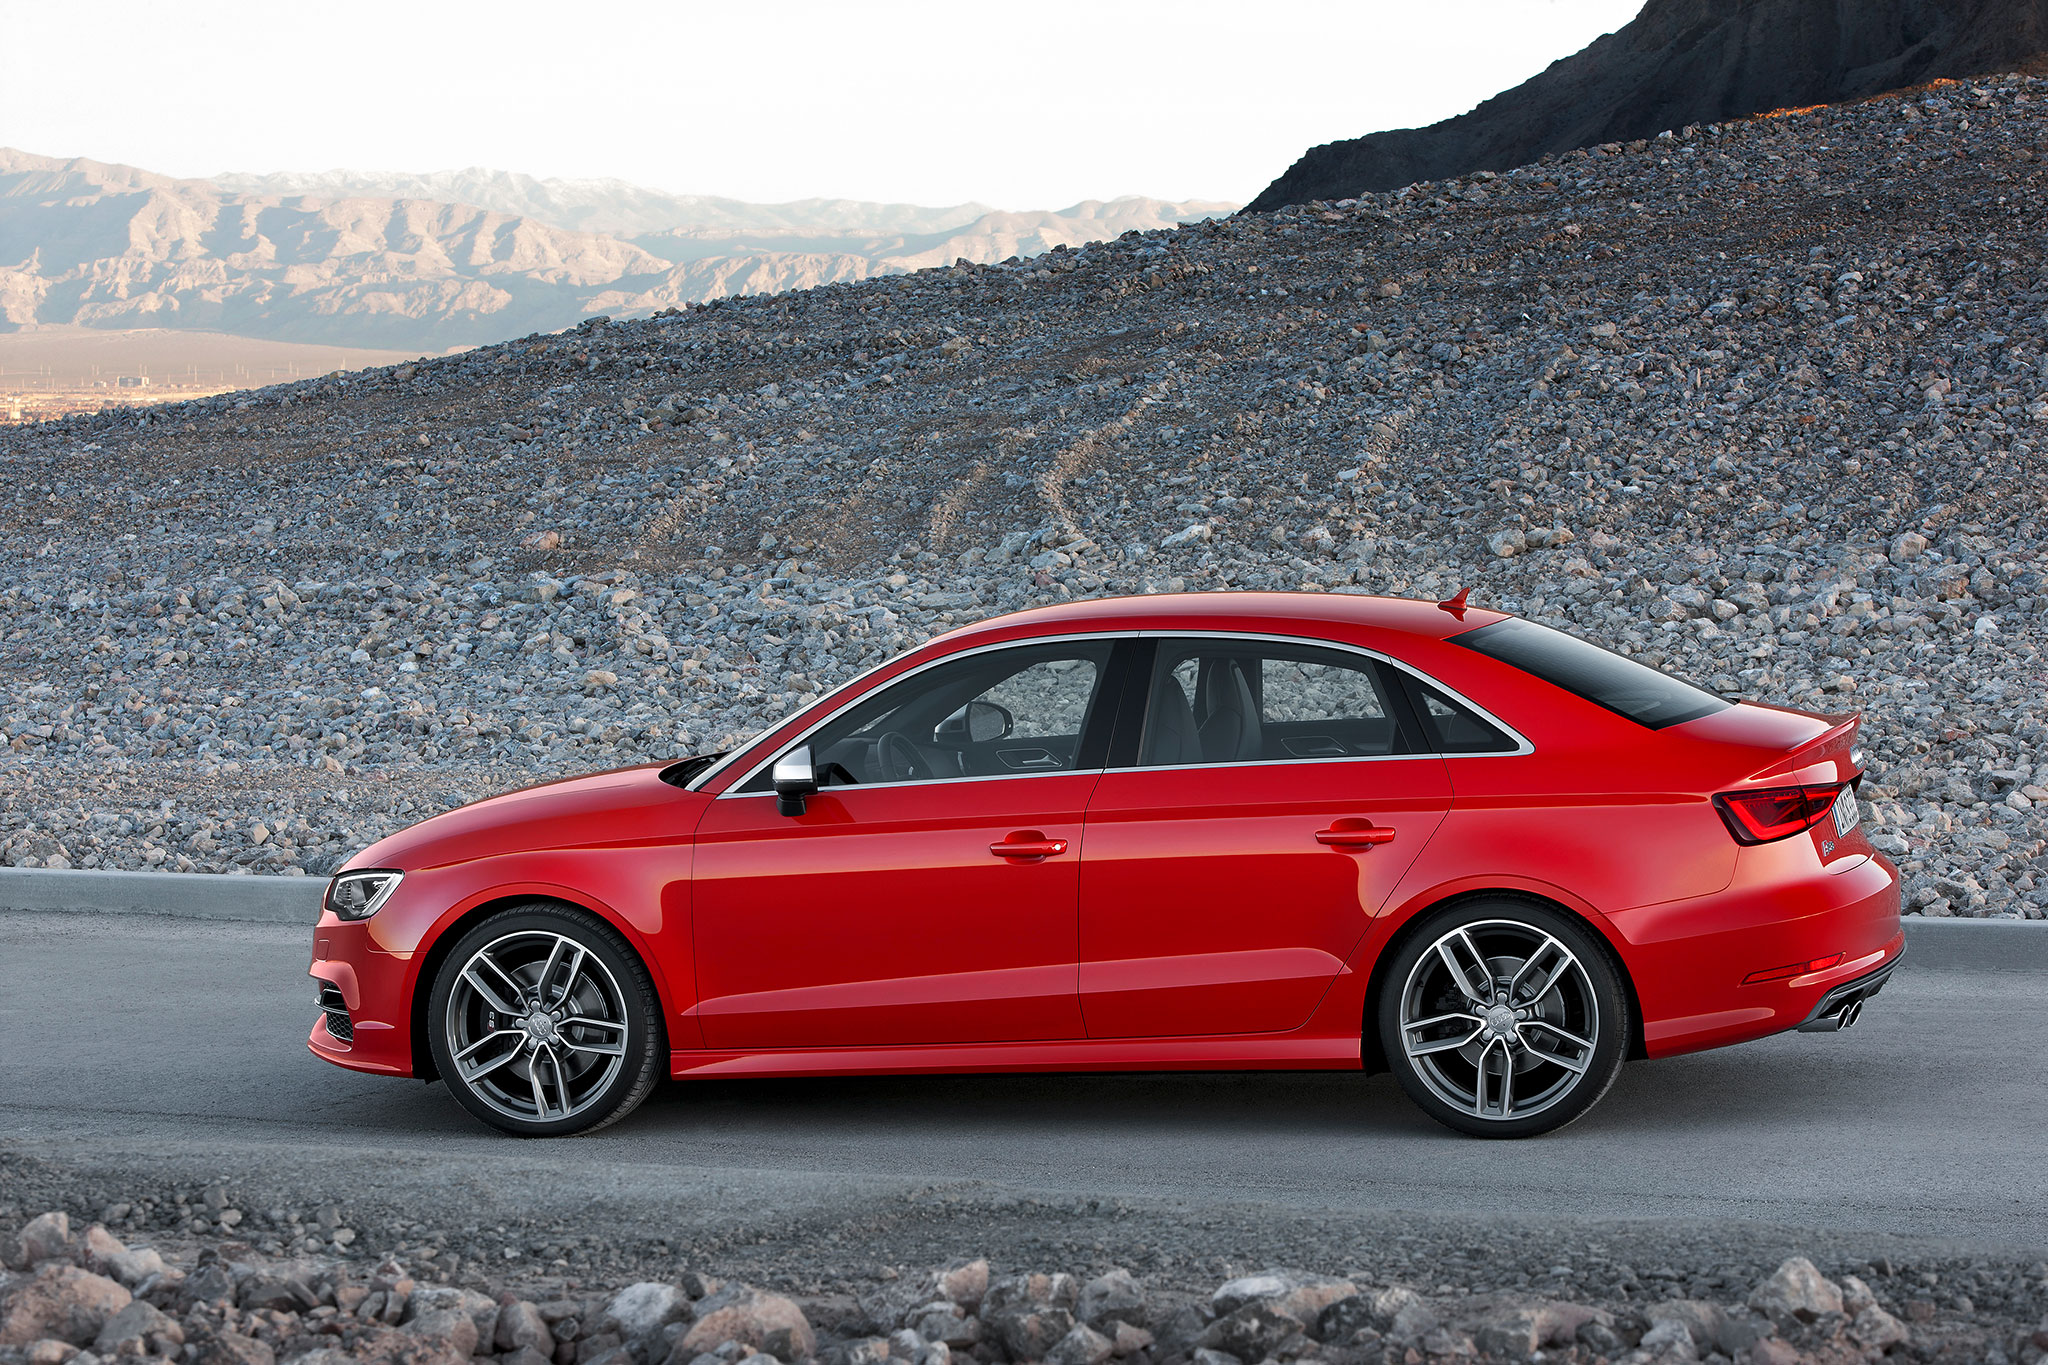 2015 Audi A3 Pricing And Options List Detailed